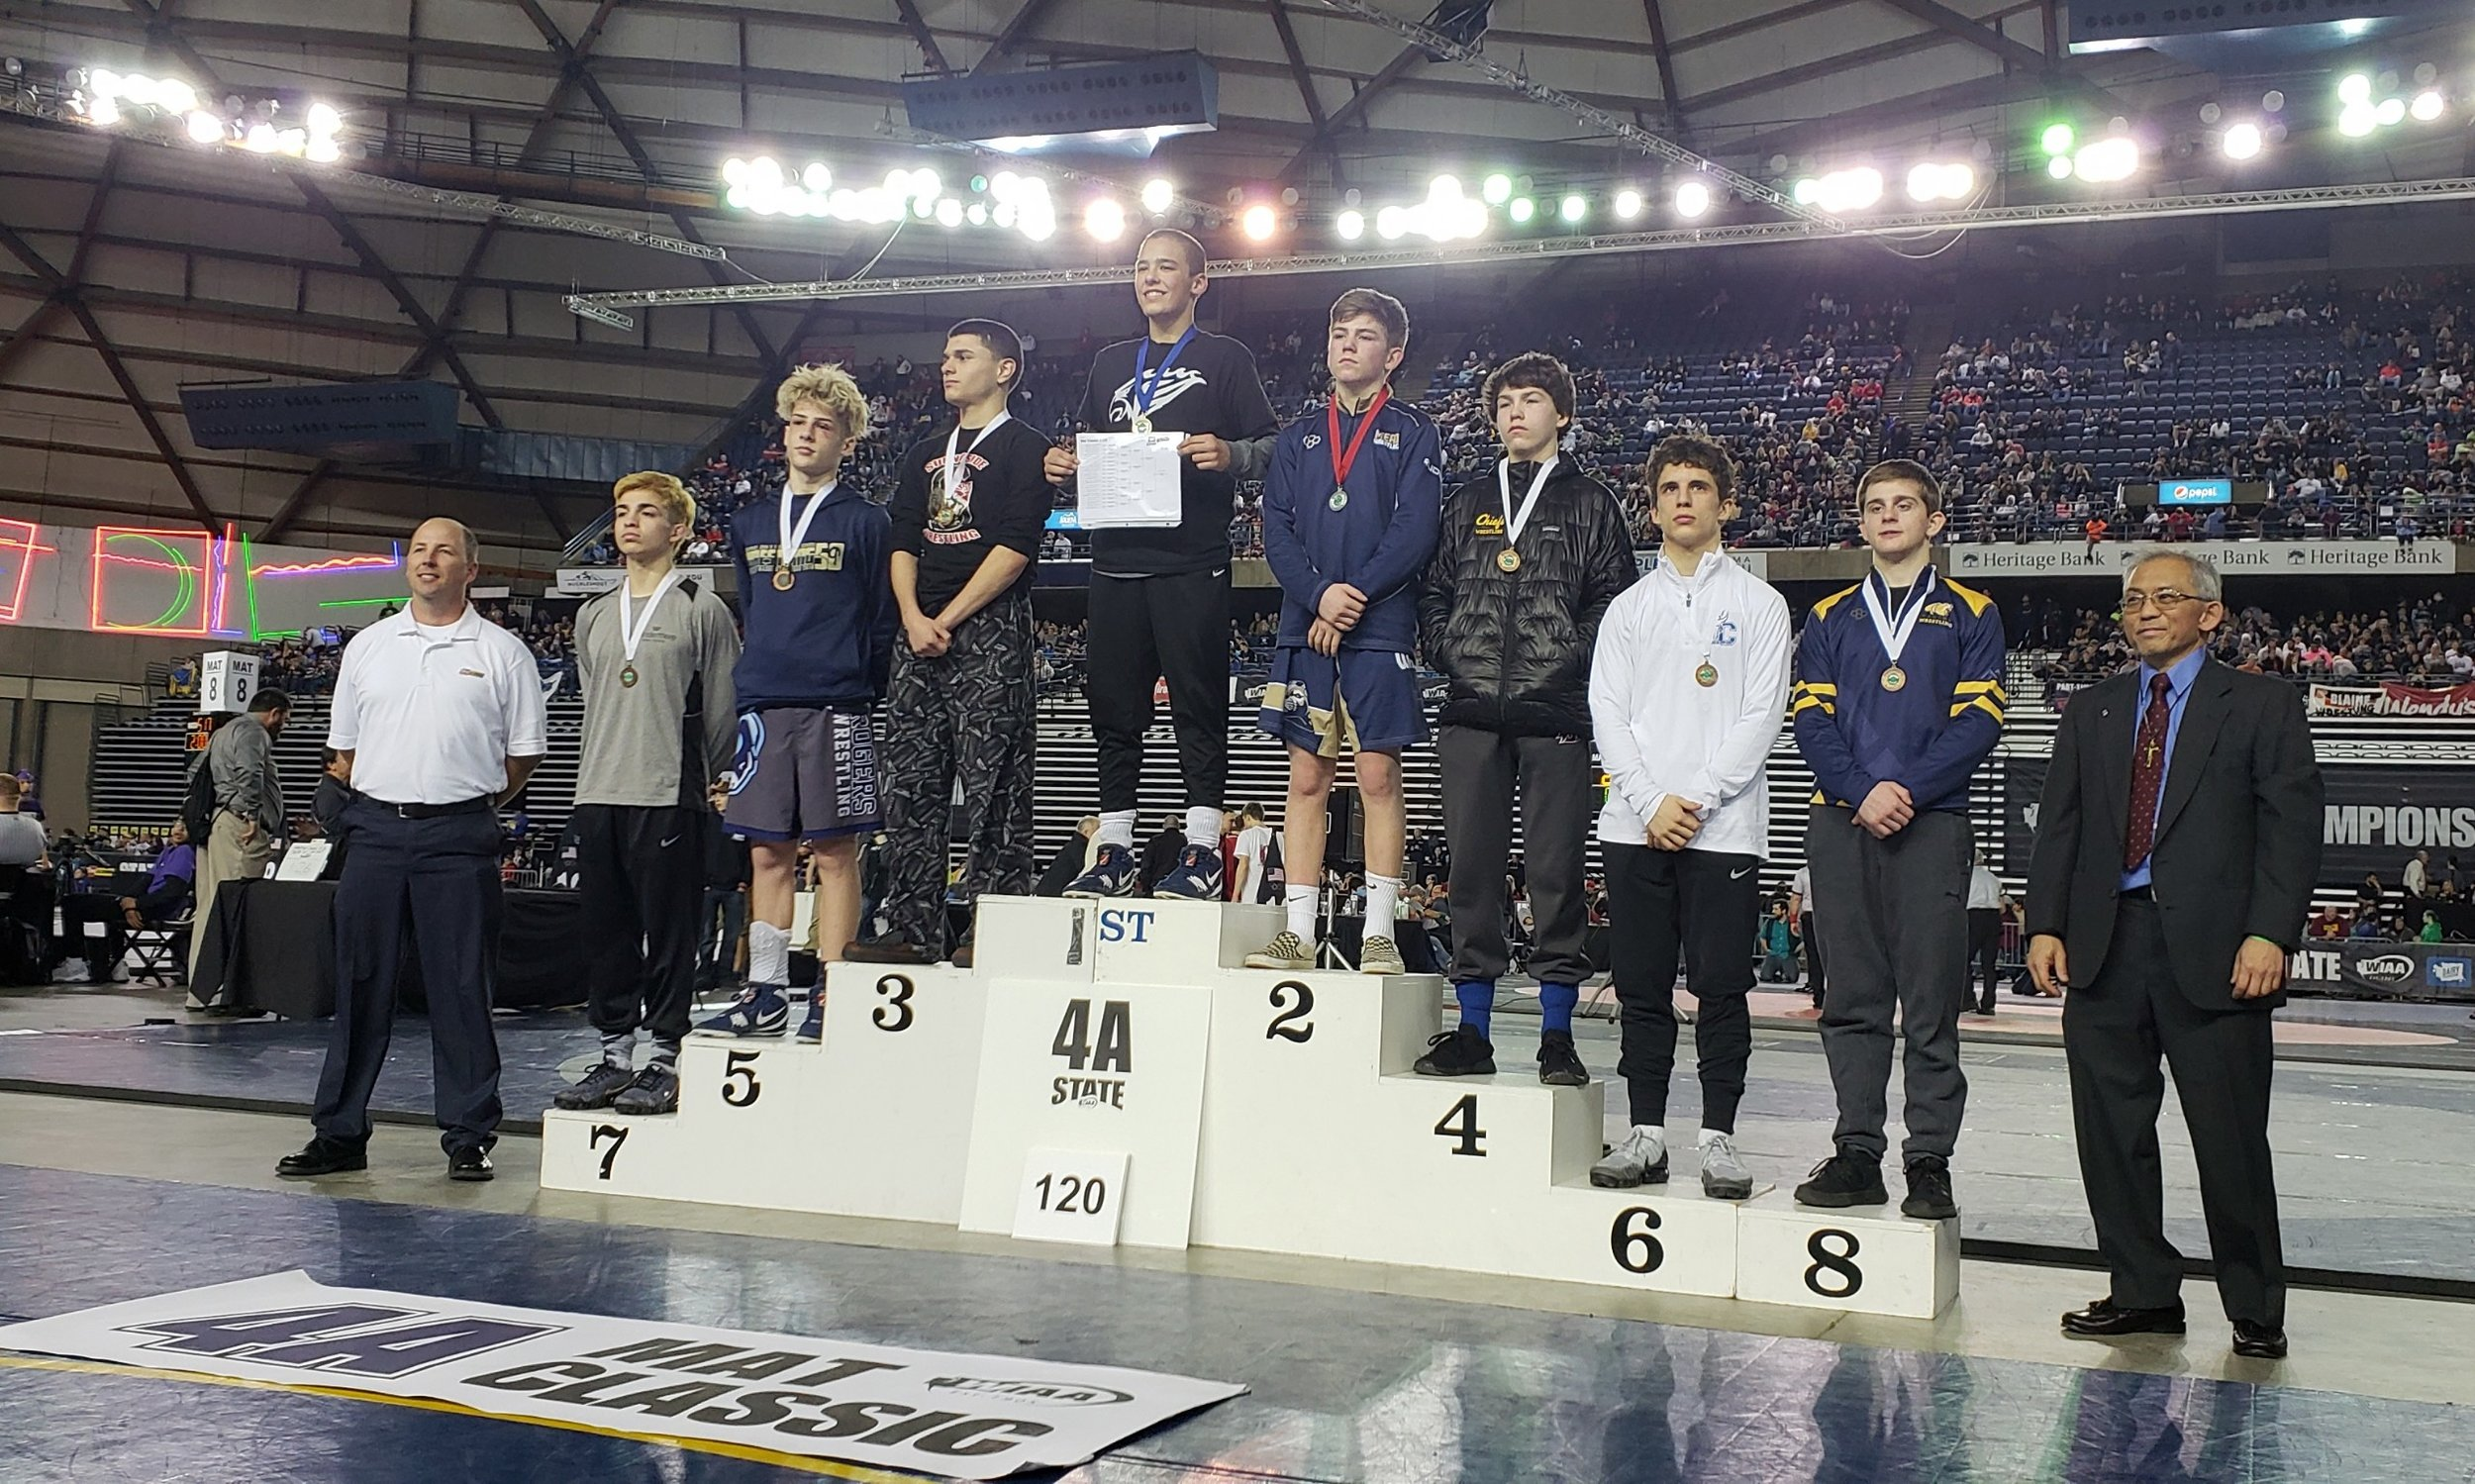 Braydon Hanson - 8th Place